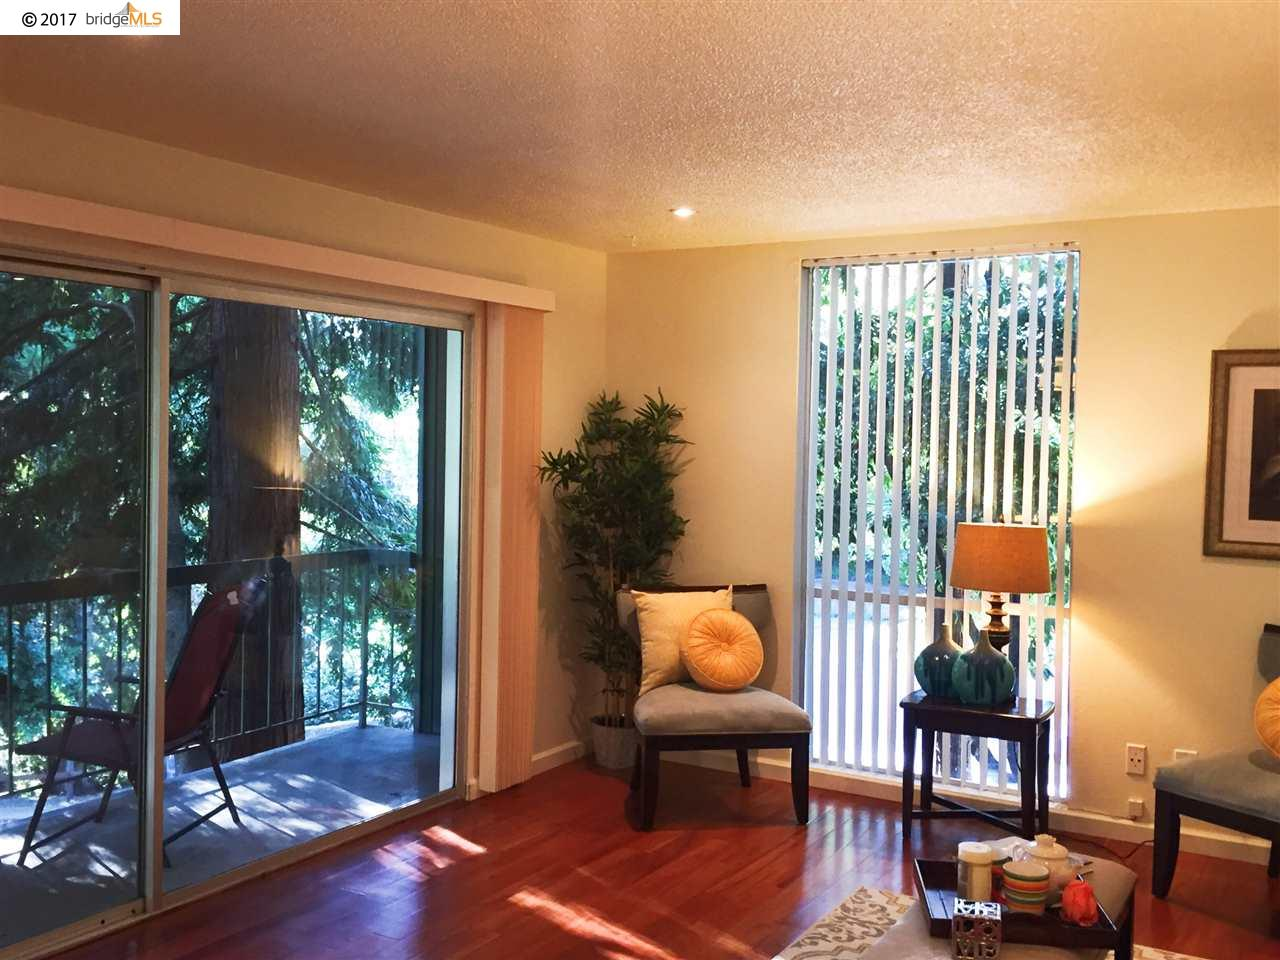 Additional photo for property listing at 2700 Le Conte Avenue  Berkeley, Kalifornien 94709 Vereinigte Staaten